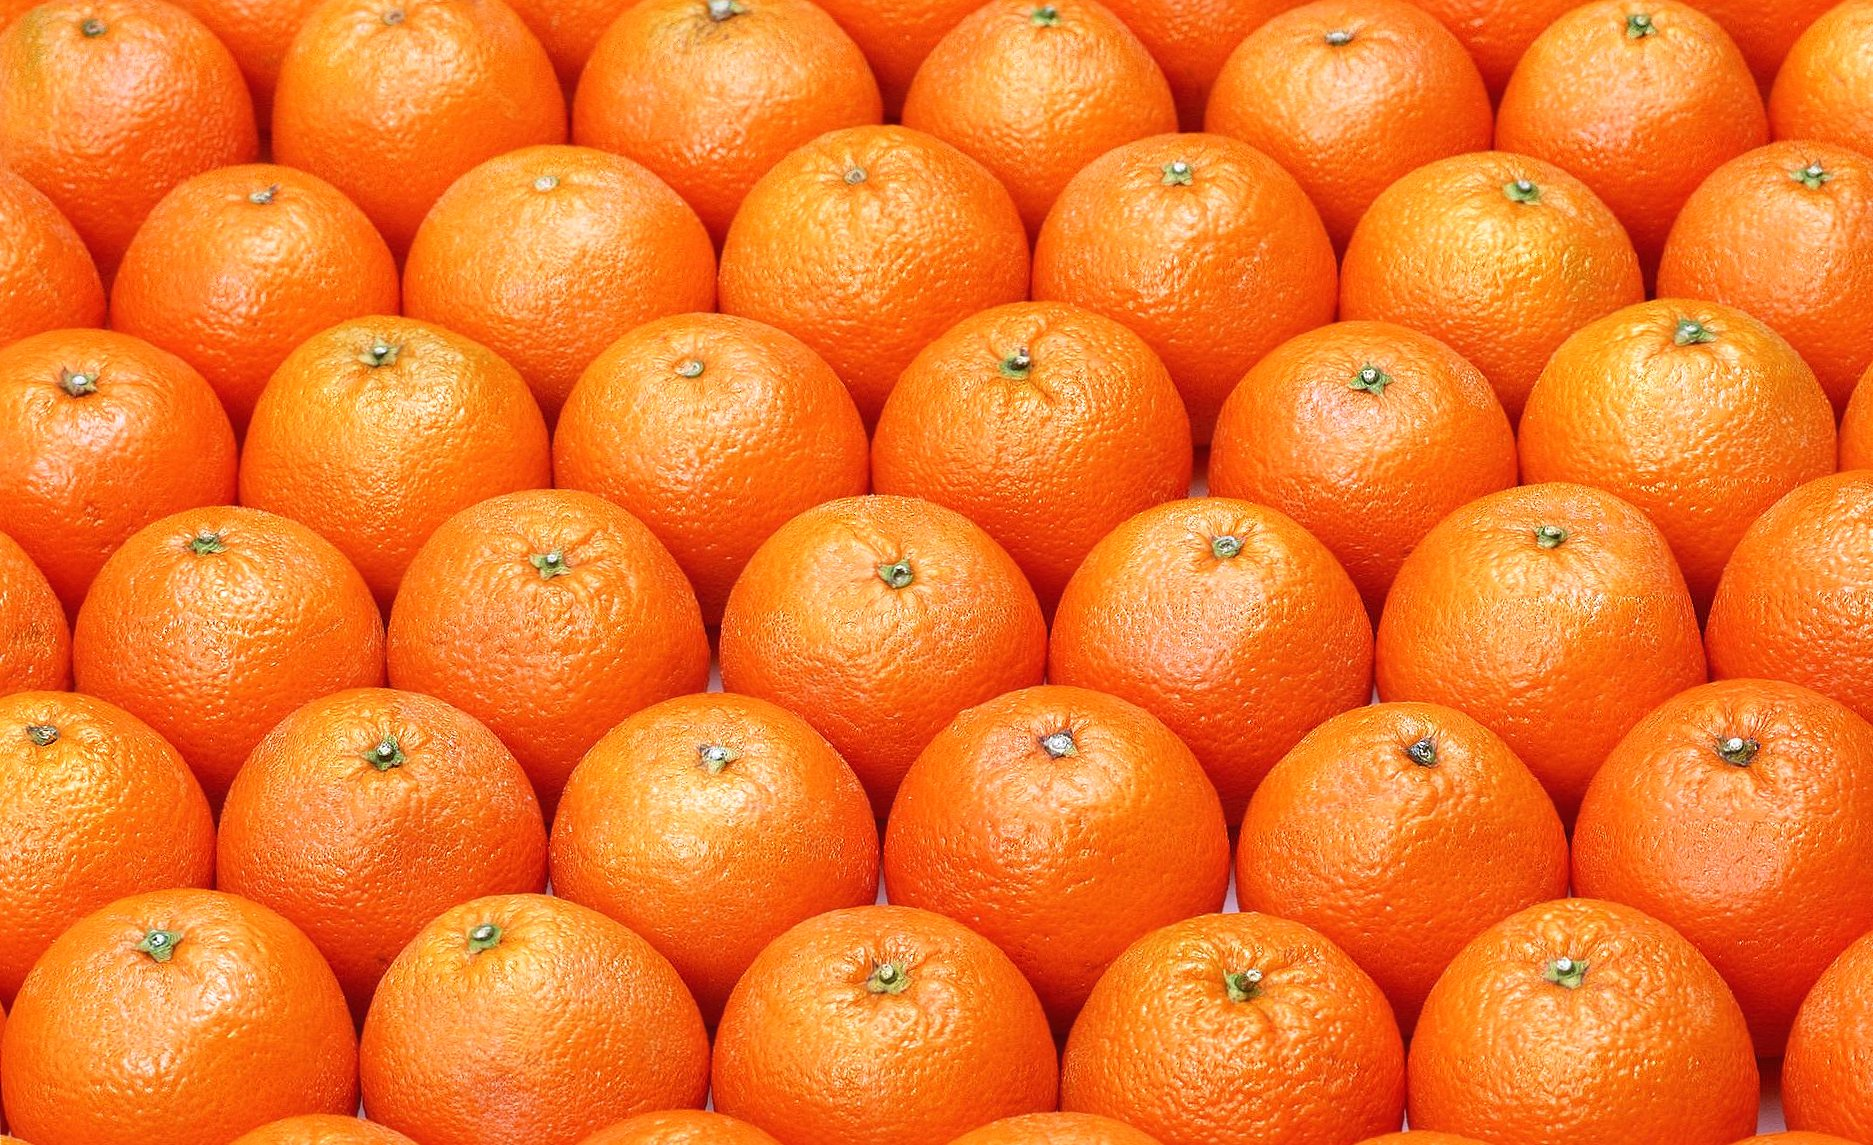 Aligned oranges wallpapers HD quality